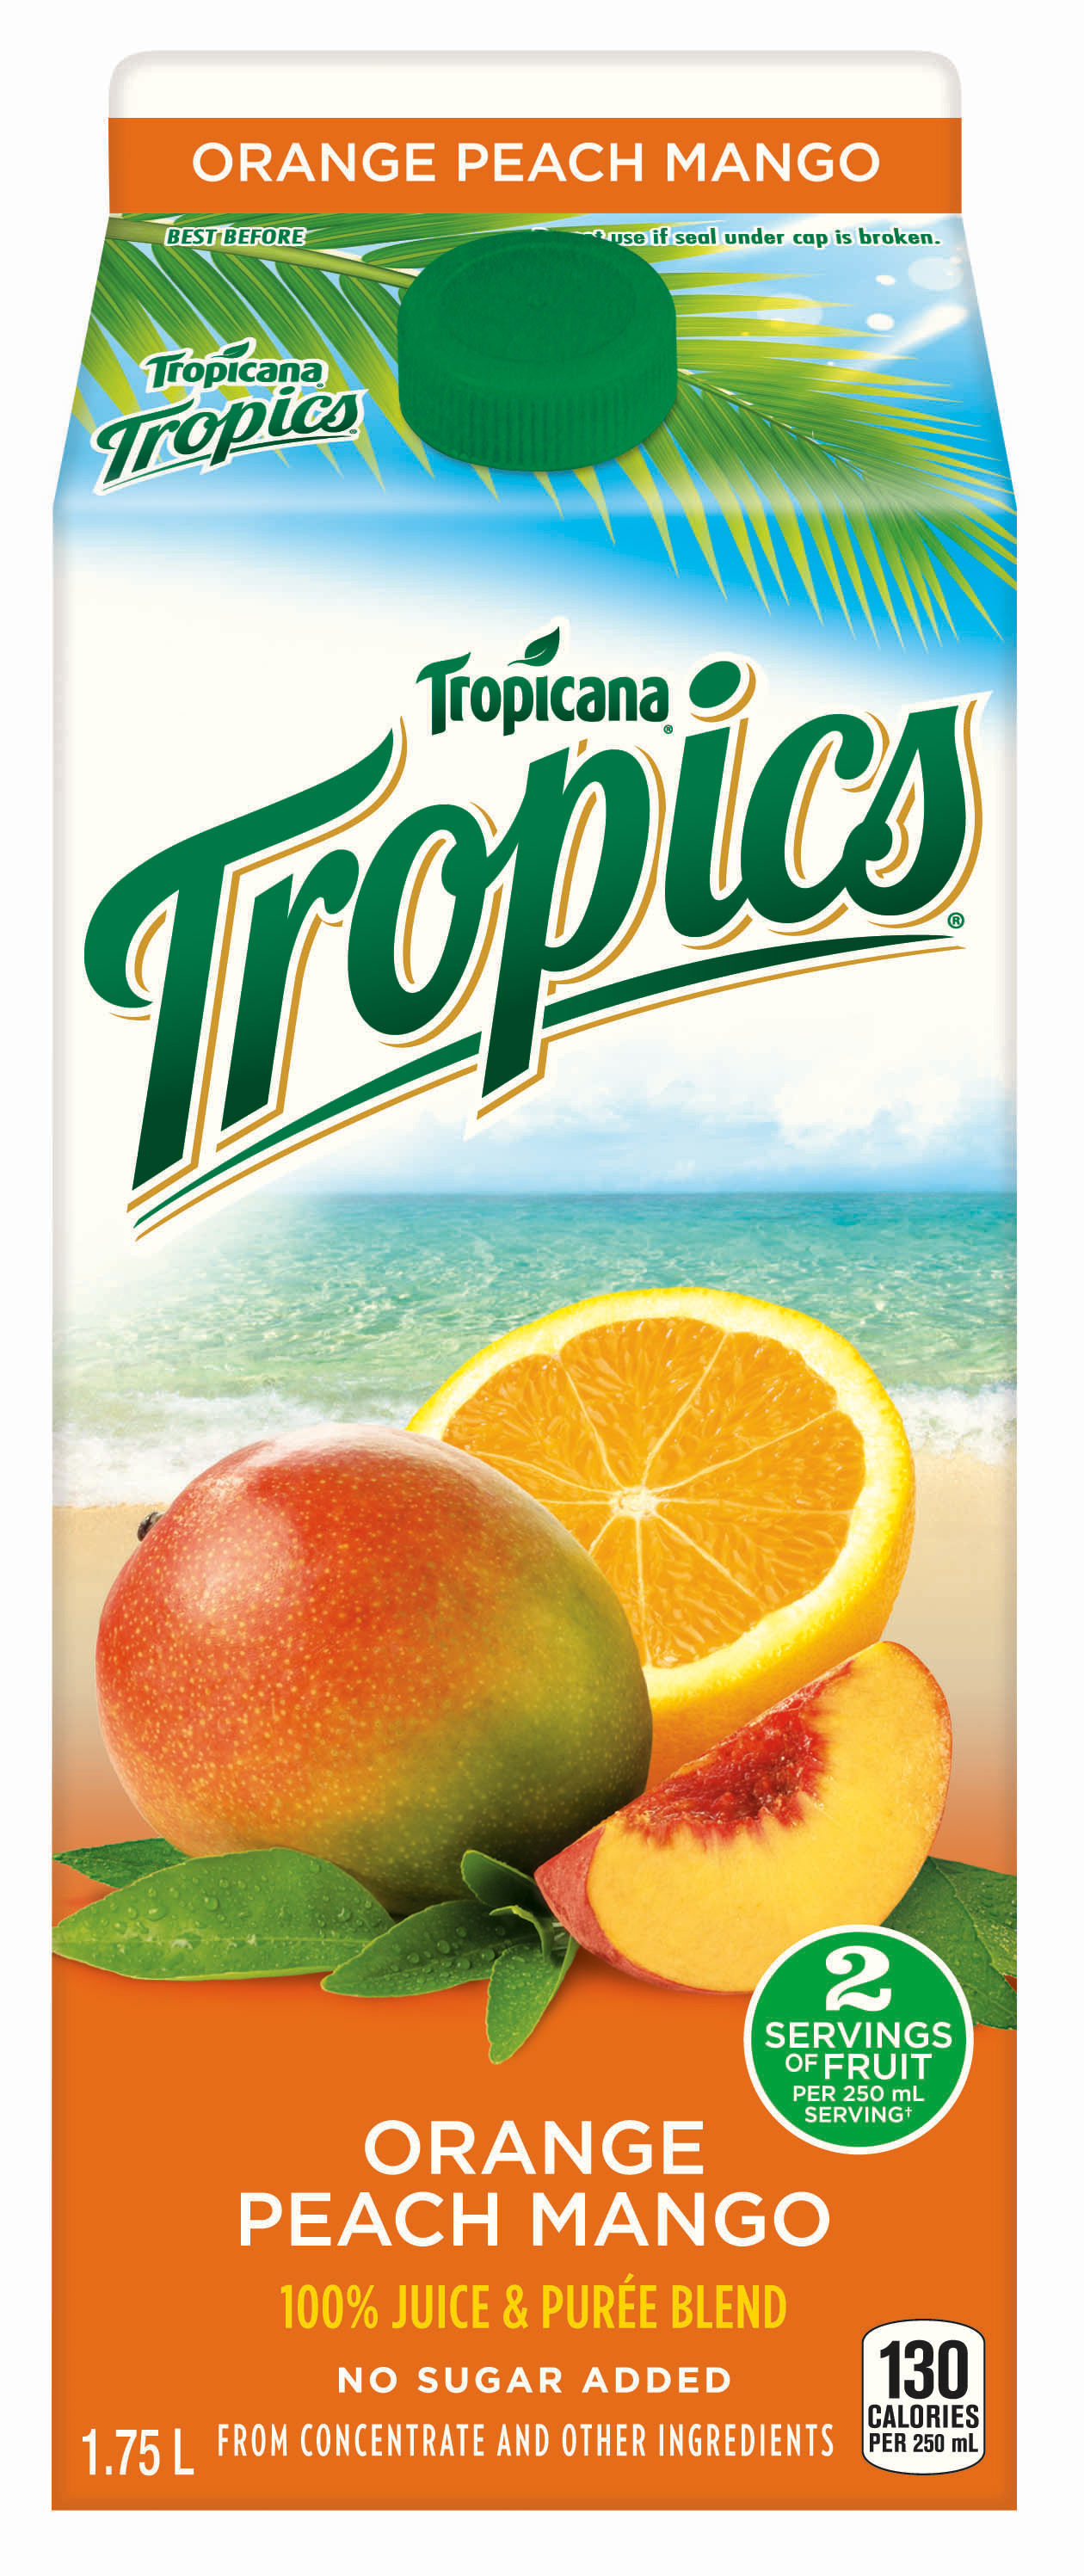 Tropicana® Tropics® - Orange Peach Mango